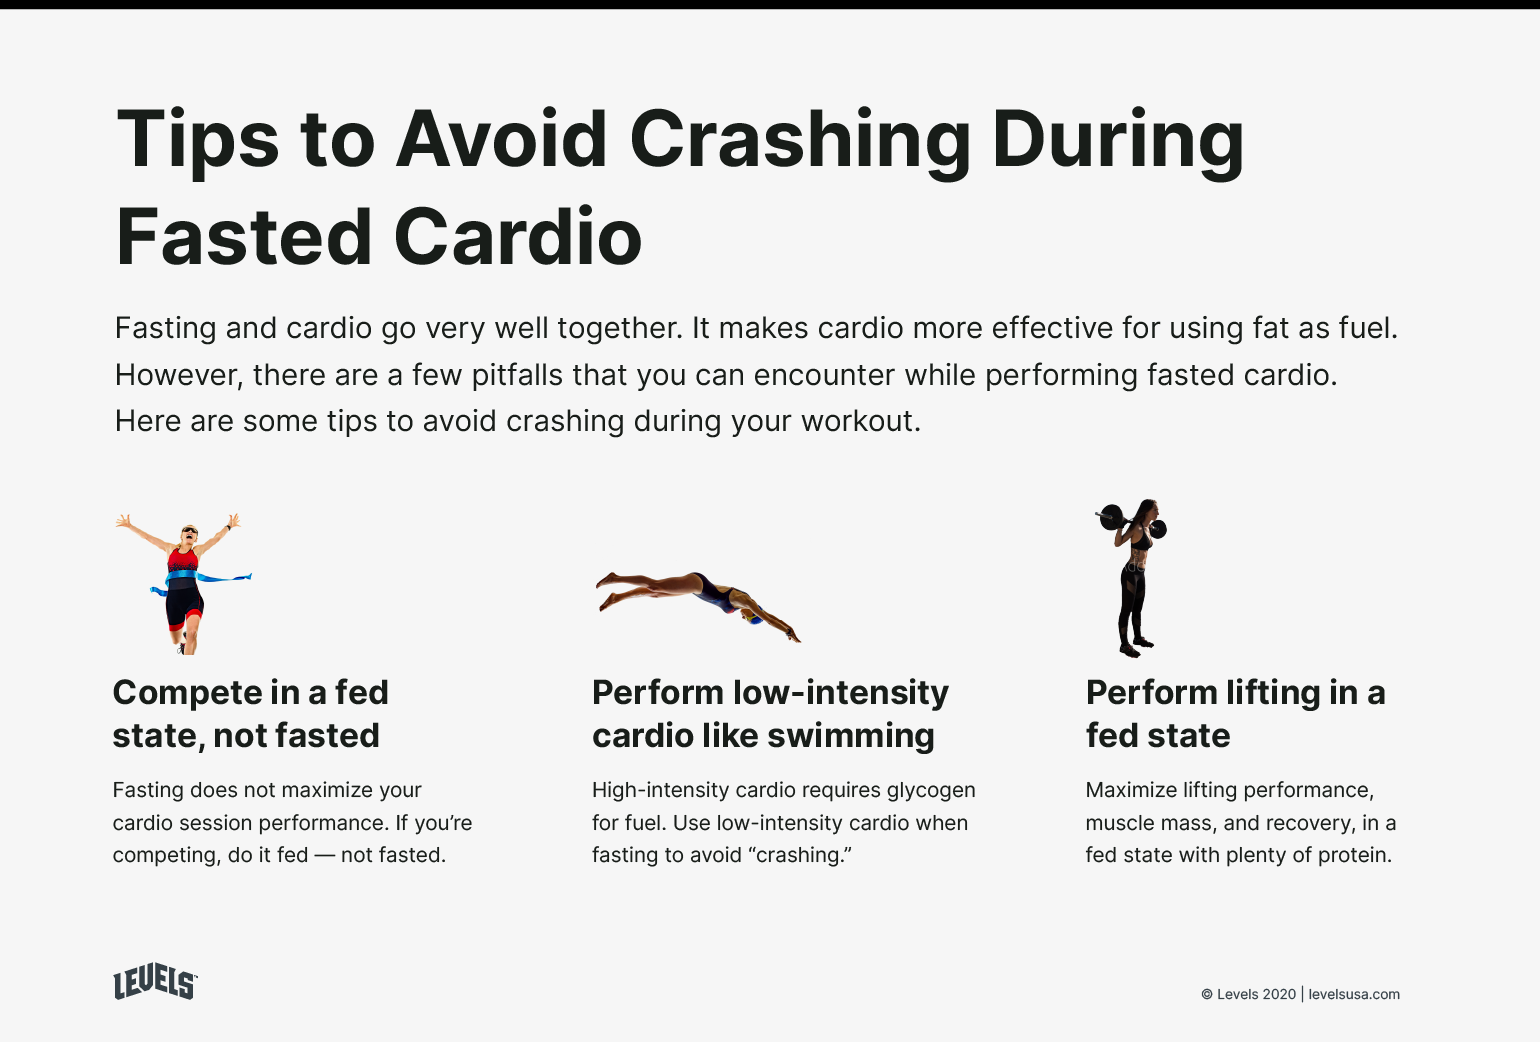 Tips to Avoid Crashing During Fasted Cardio - Infographic